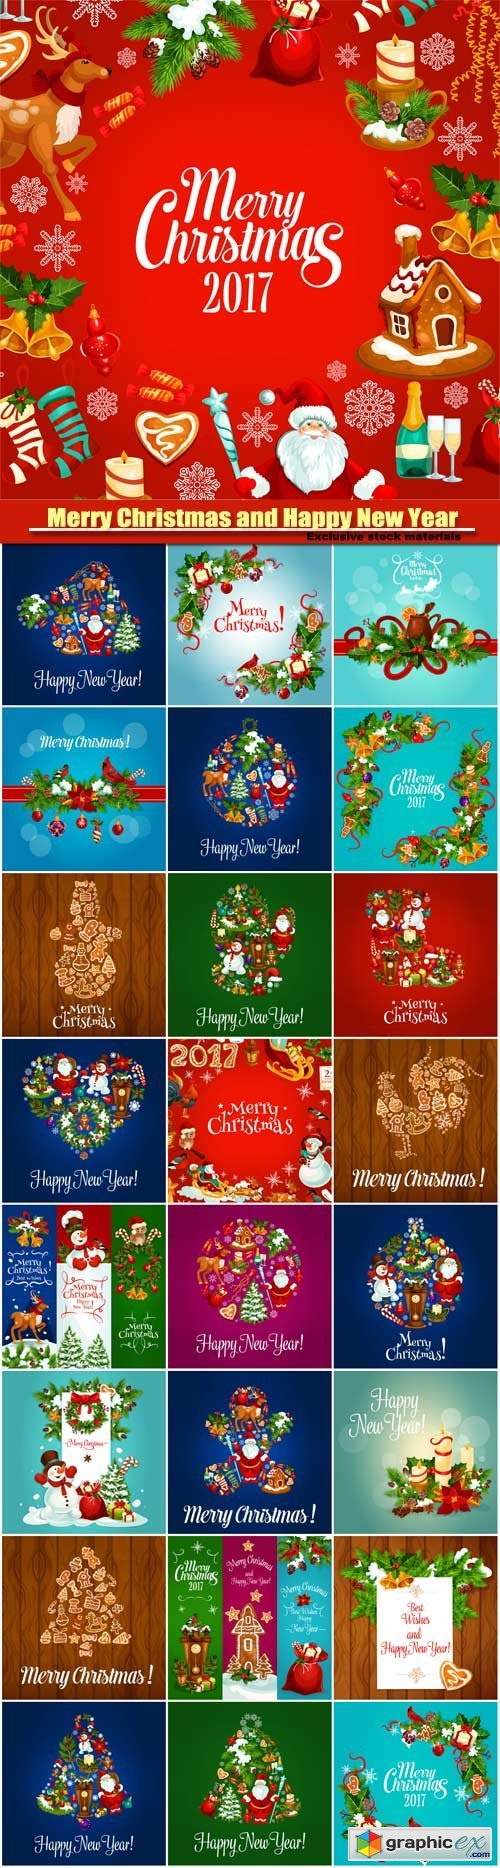 Merry Christmas and Happy New Year vector background, symbols of new year 2017, christmas snowman in hat, cock rooster